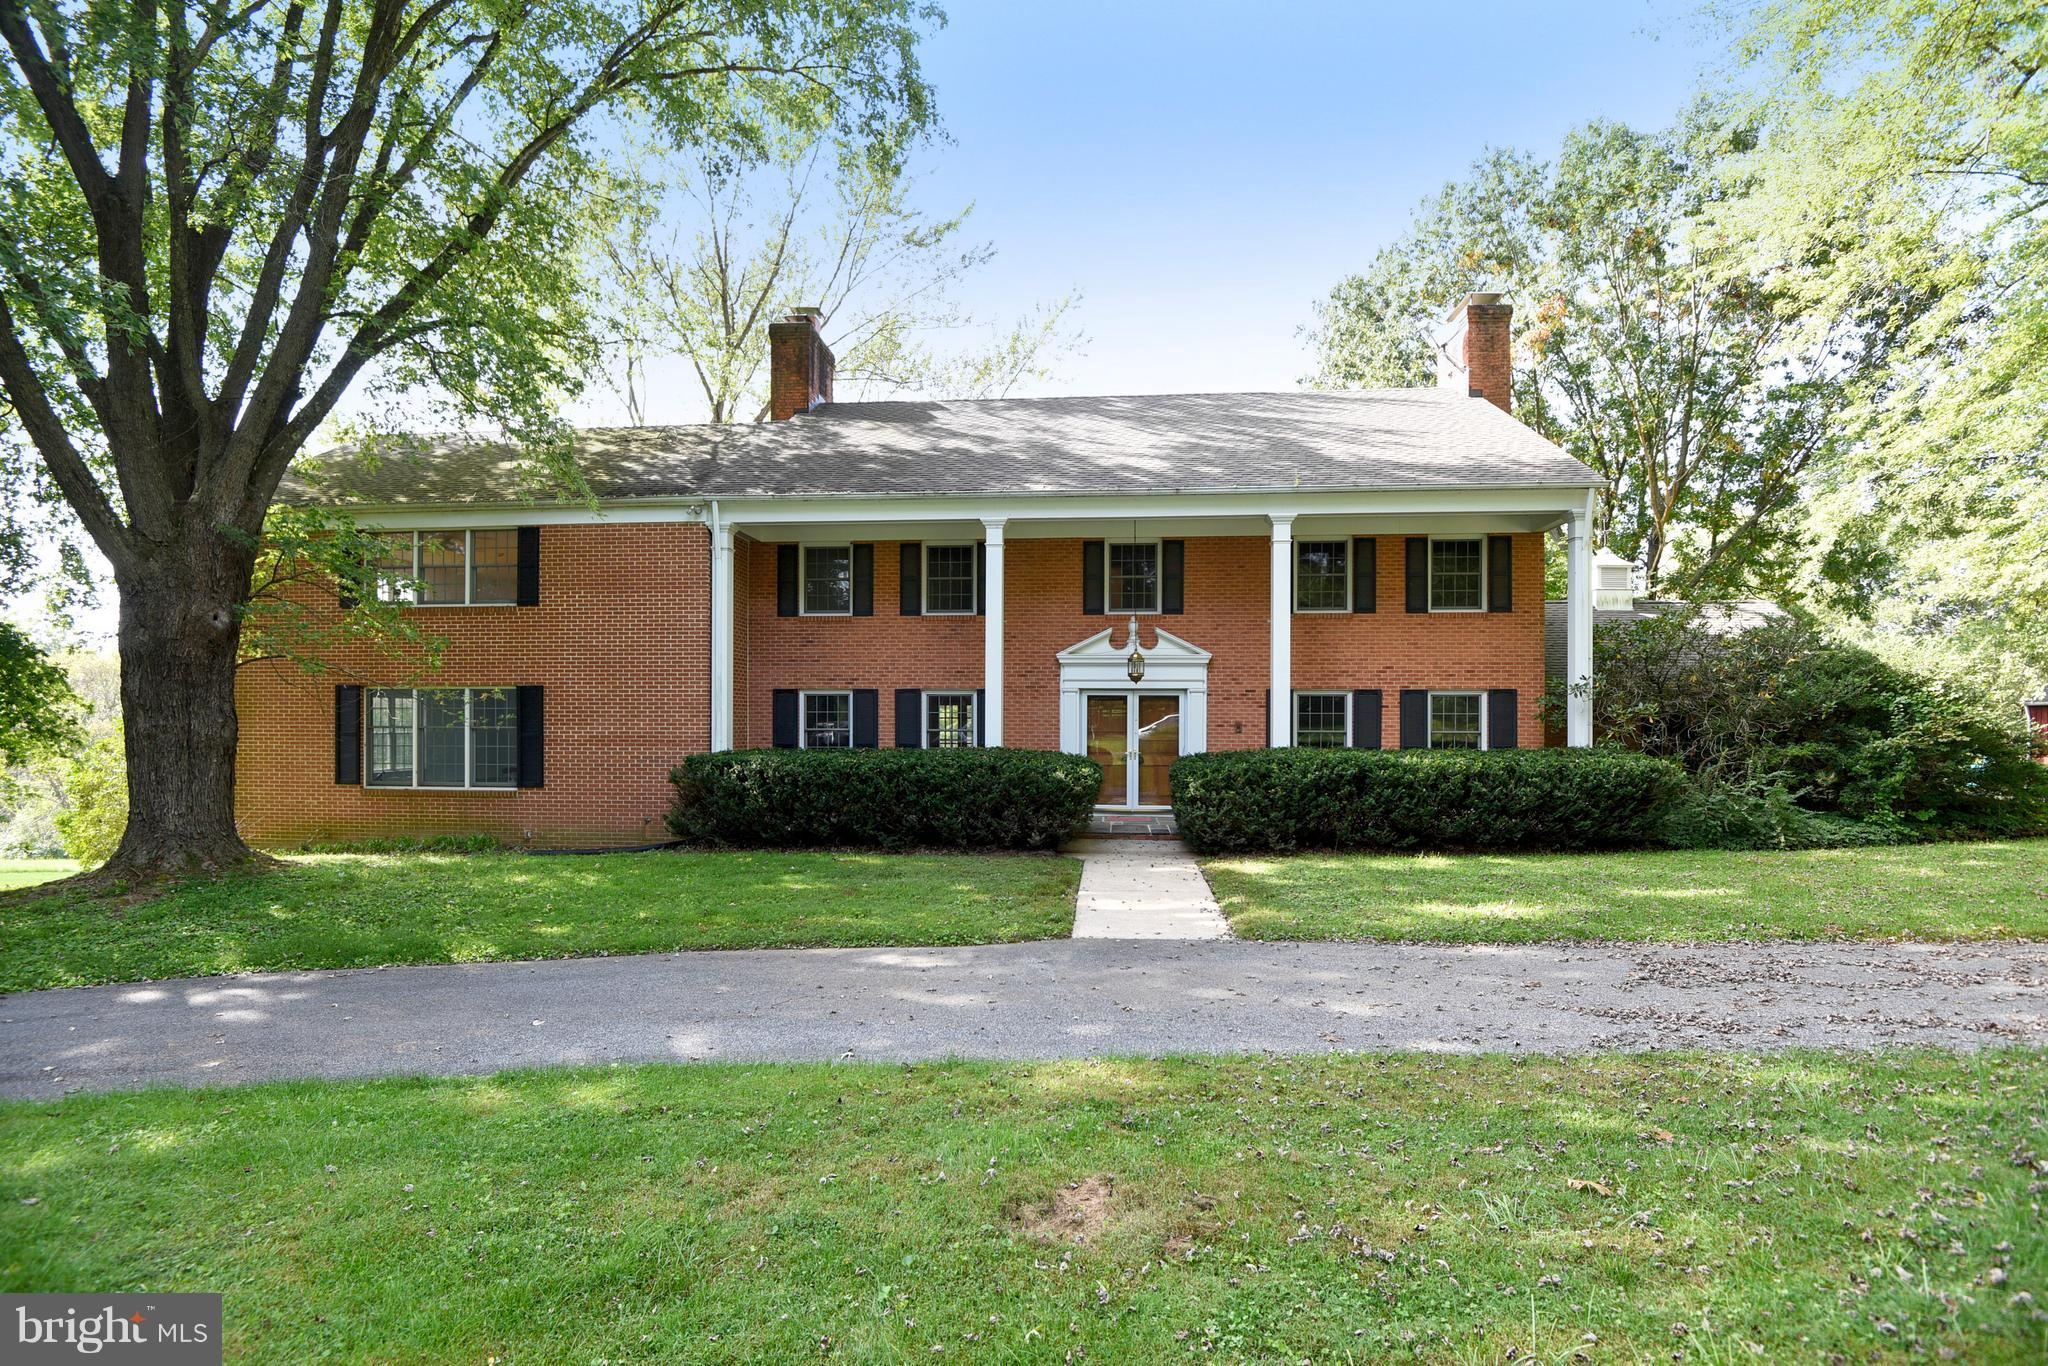 16500 JM PEARCE ROAD, MONKTON, MD 21111